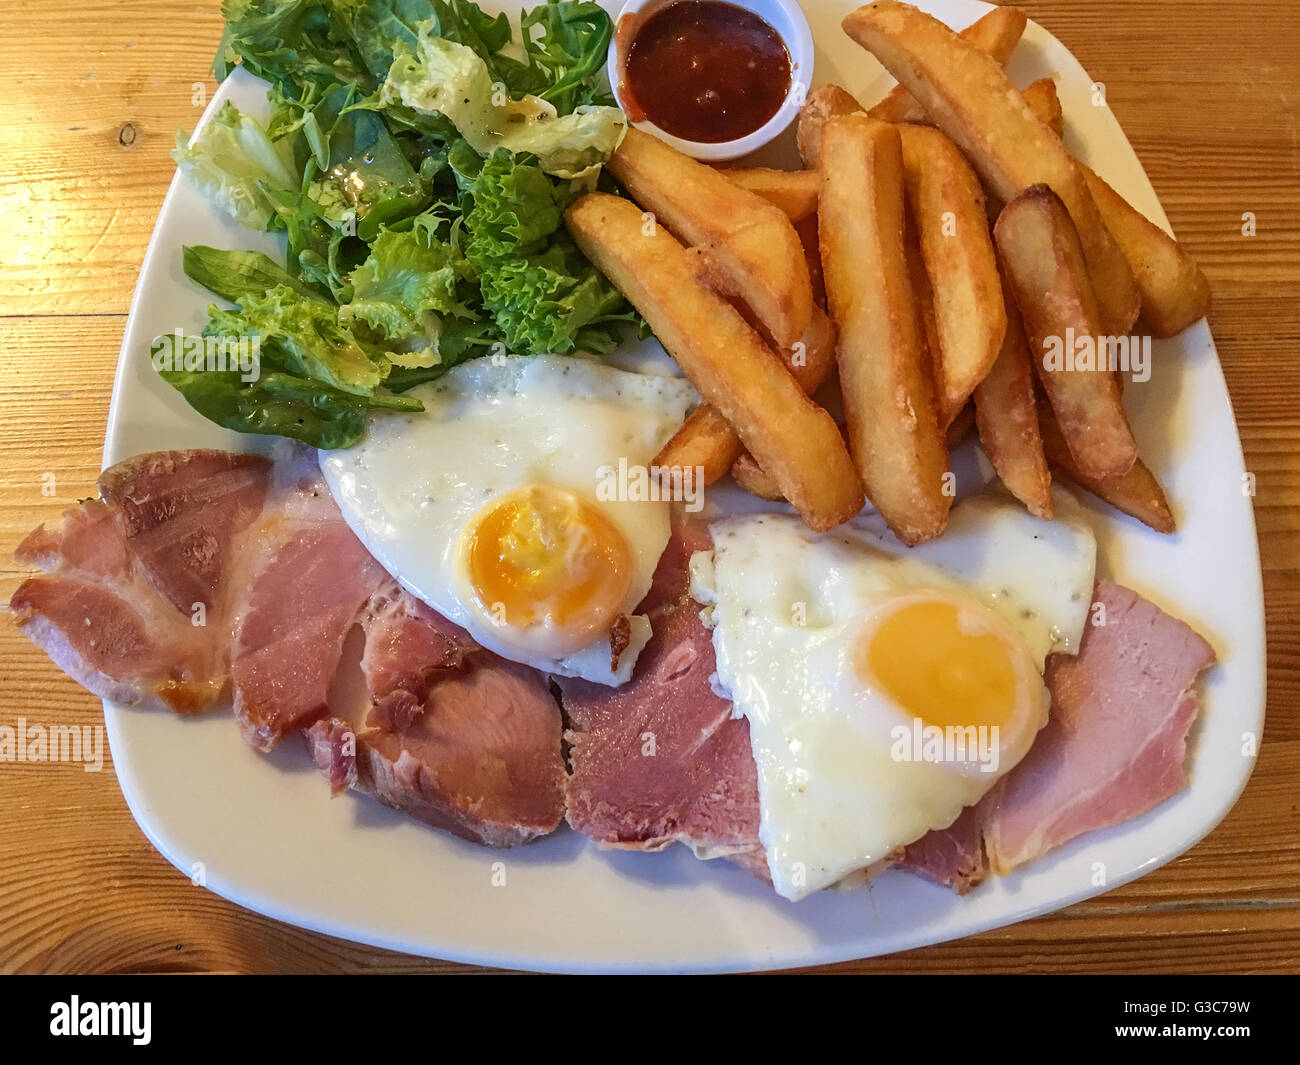 Ham, egg and chips pub bar meal - Stock Image